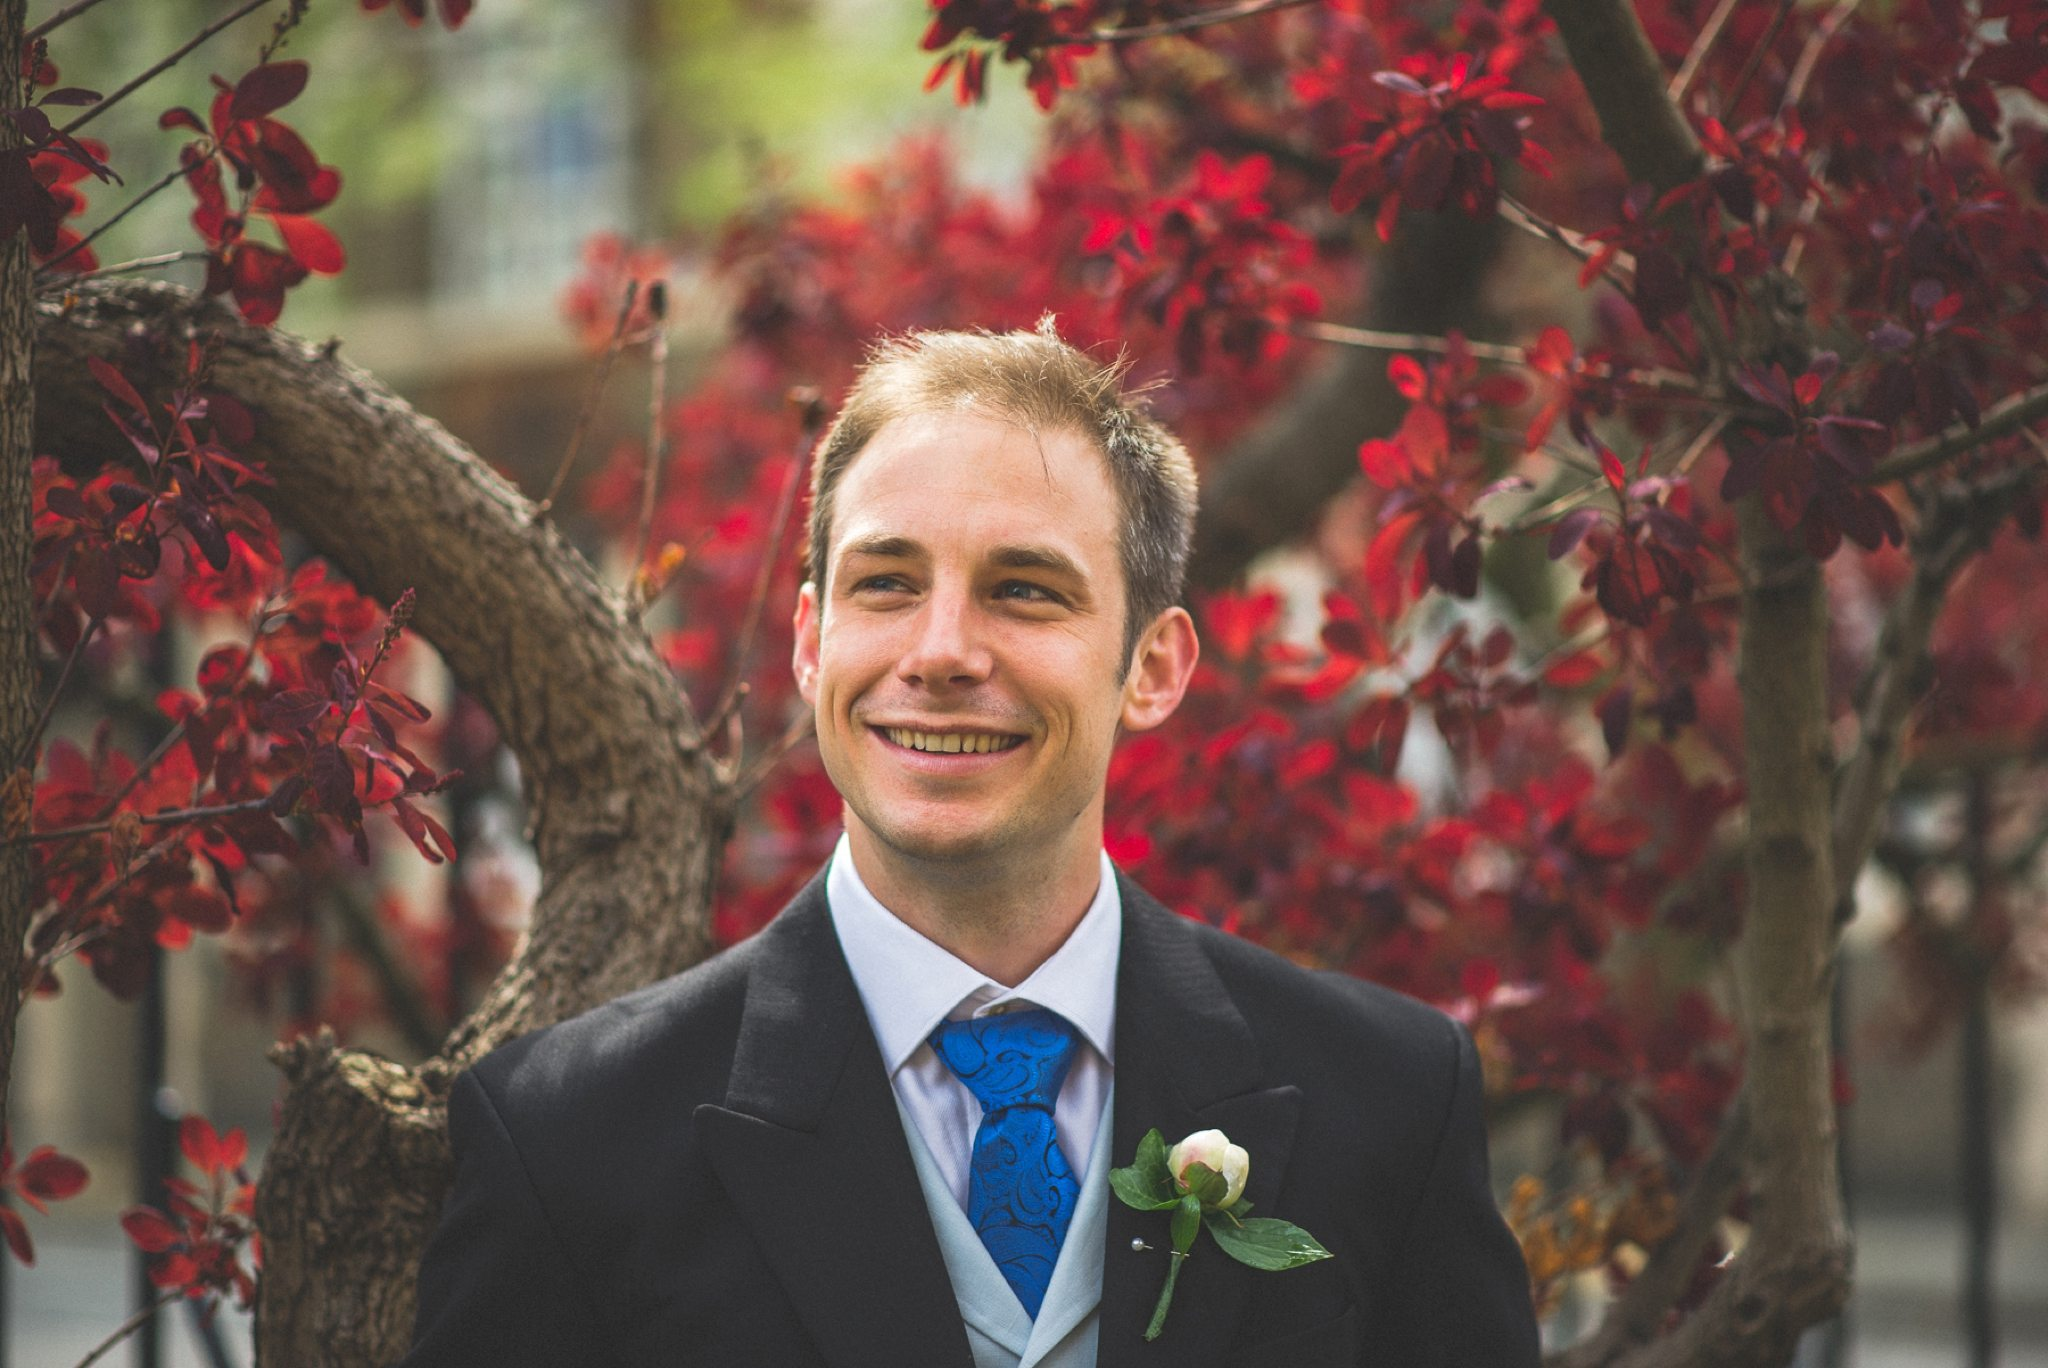 Groom standing in front of deep red foliage